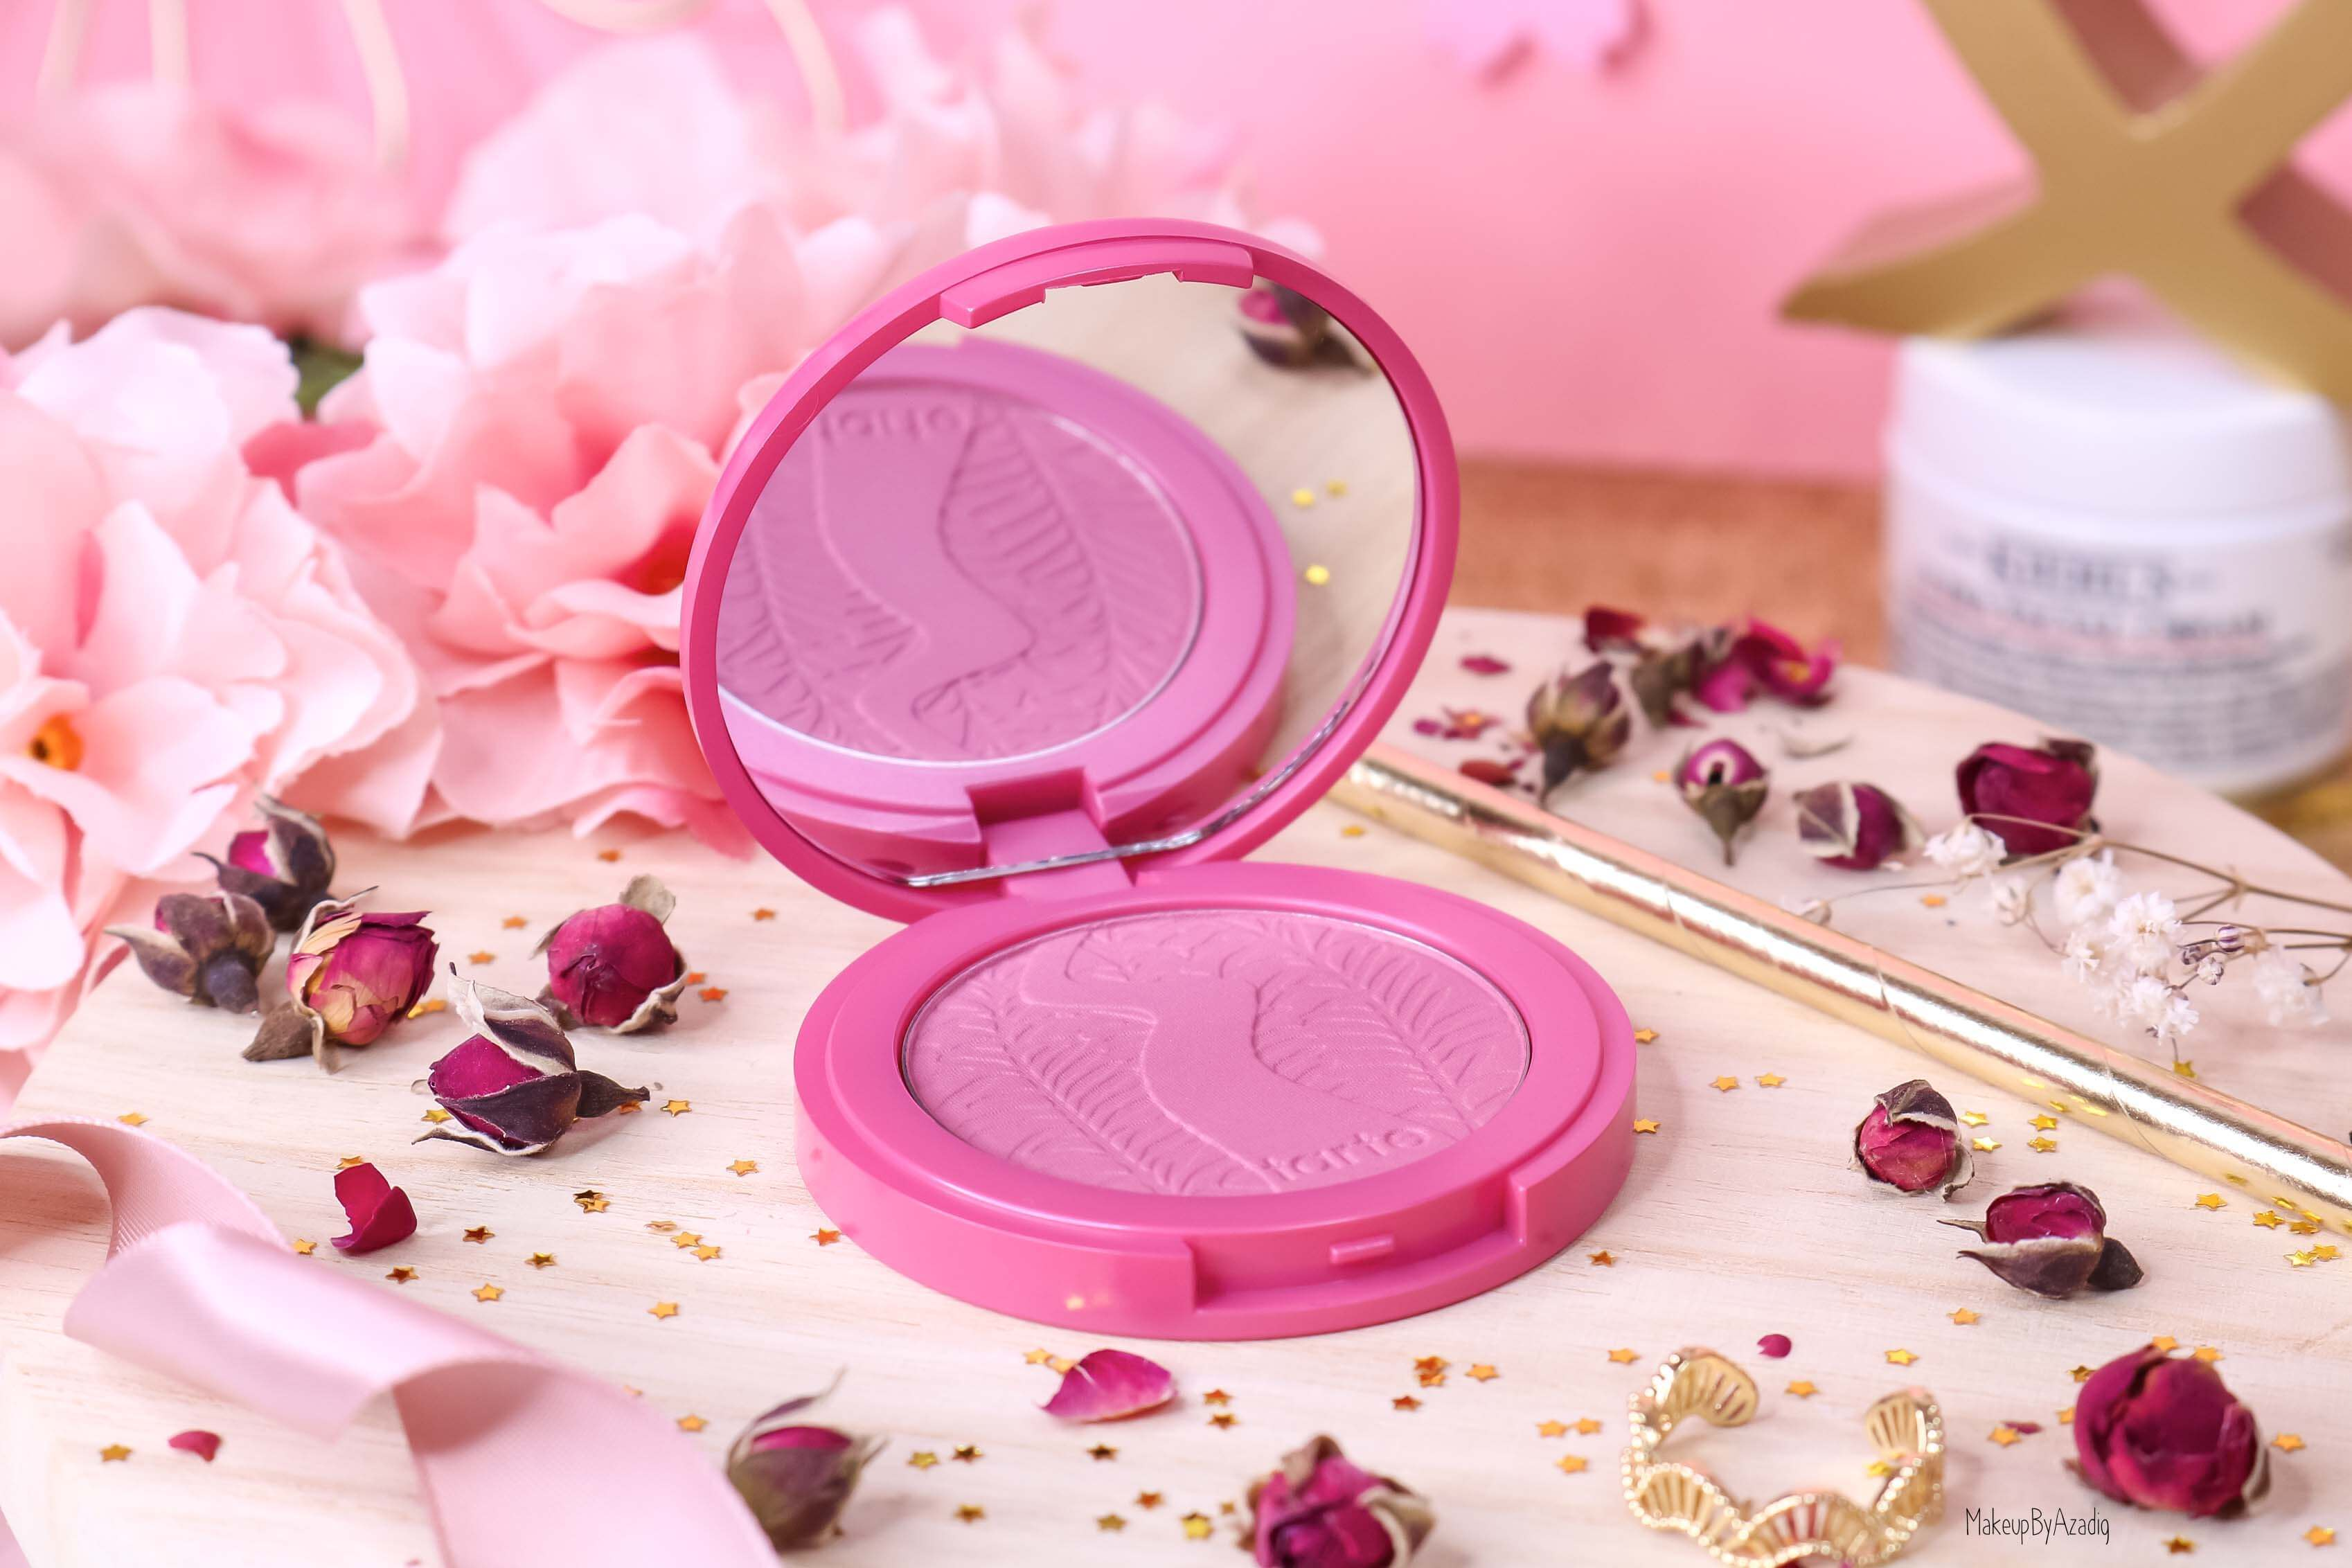 revue-blush-amazonian-clay-tarte-cosmetics-makeupbyazadig-sephora-france-blushing-bride-swatch-avis-prix-miniature